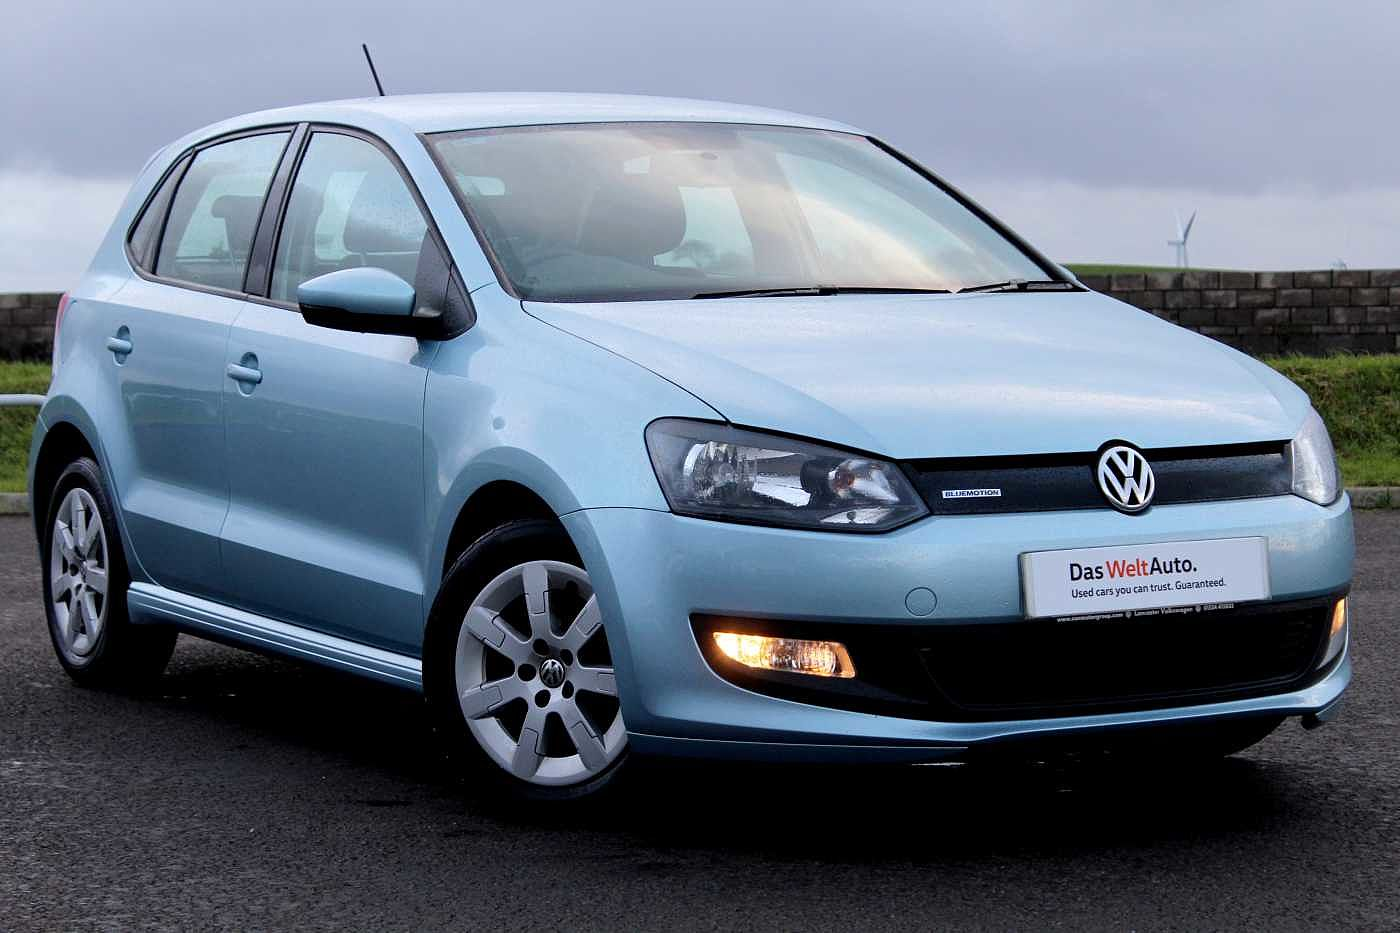 Volkswagen Polo 1.2 TDI (s/s) (75 PS) 5-Dr